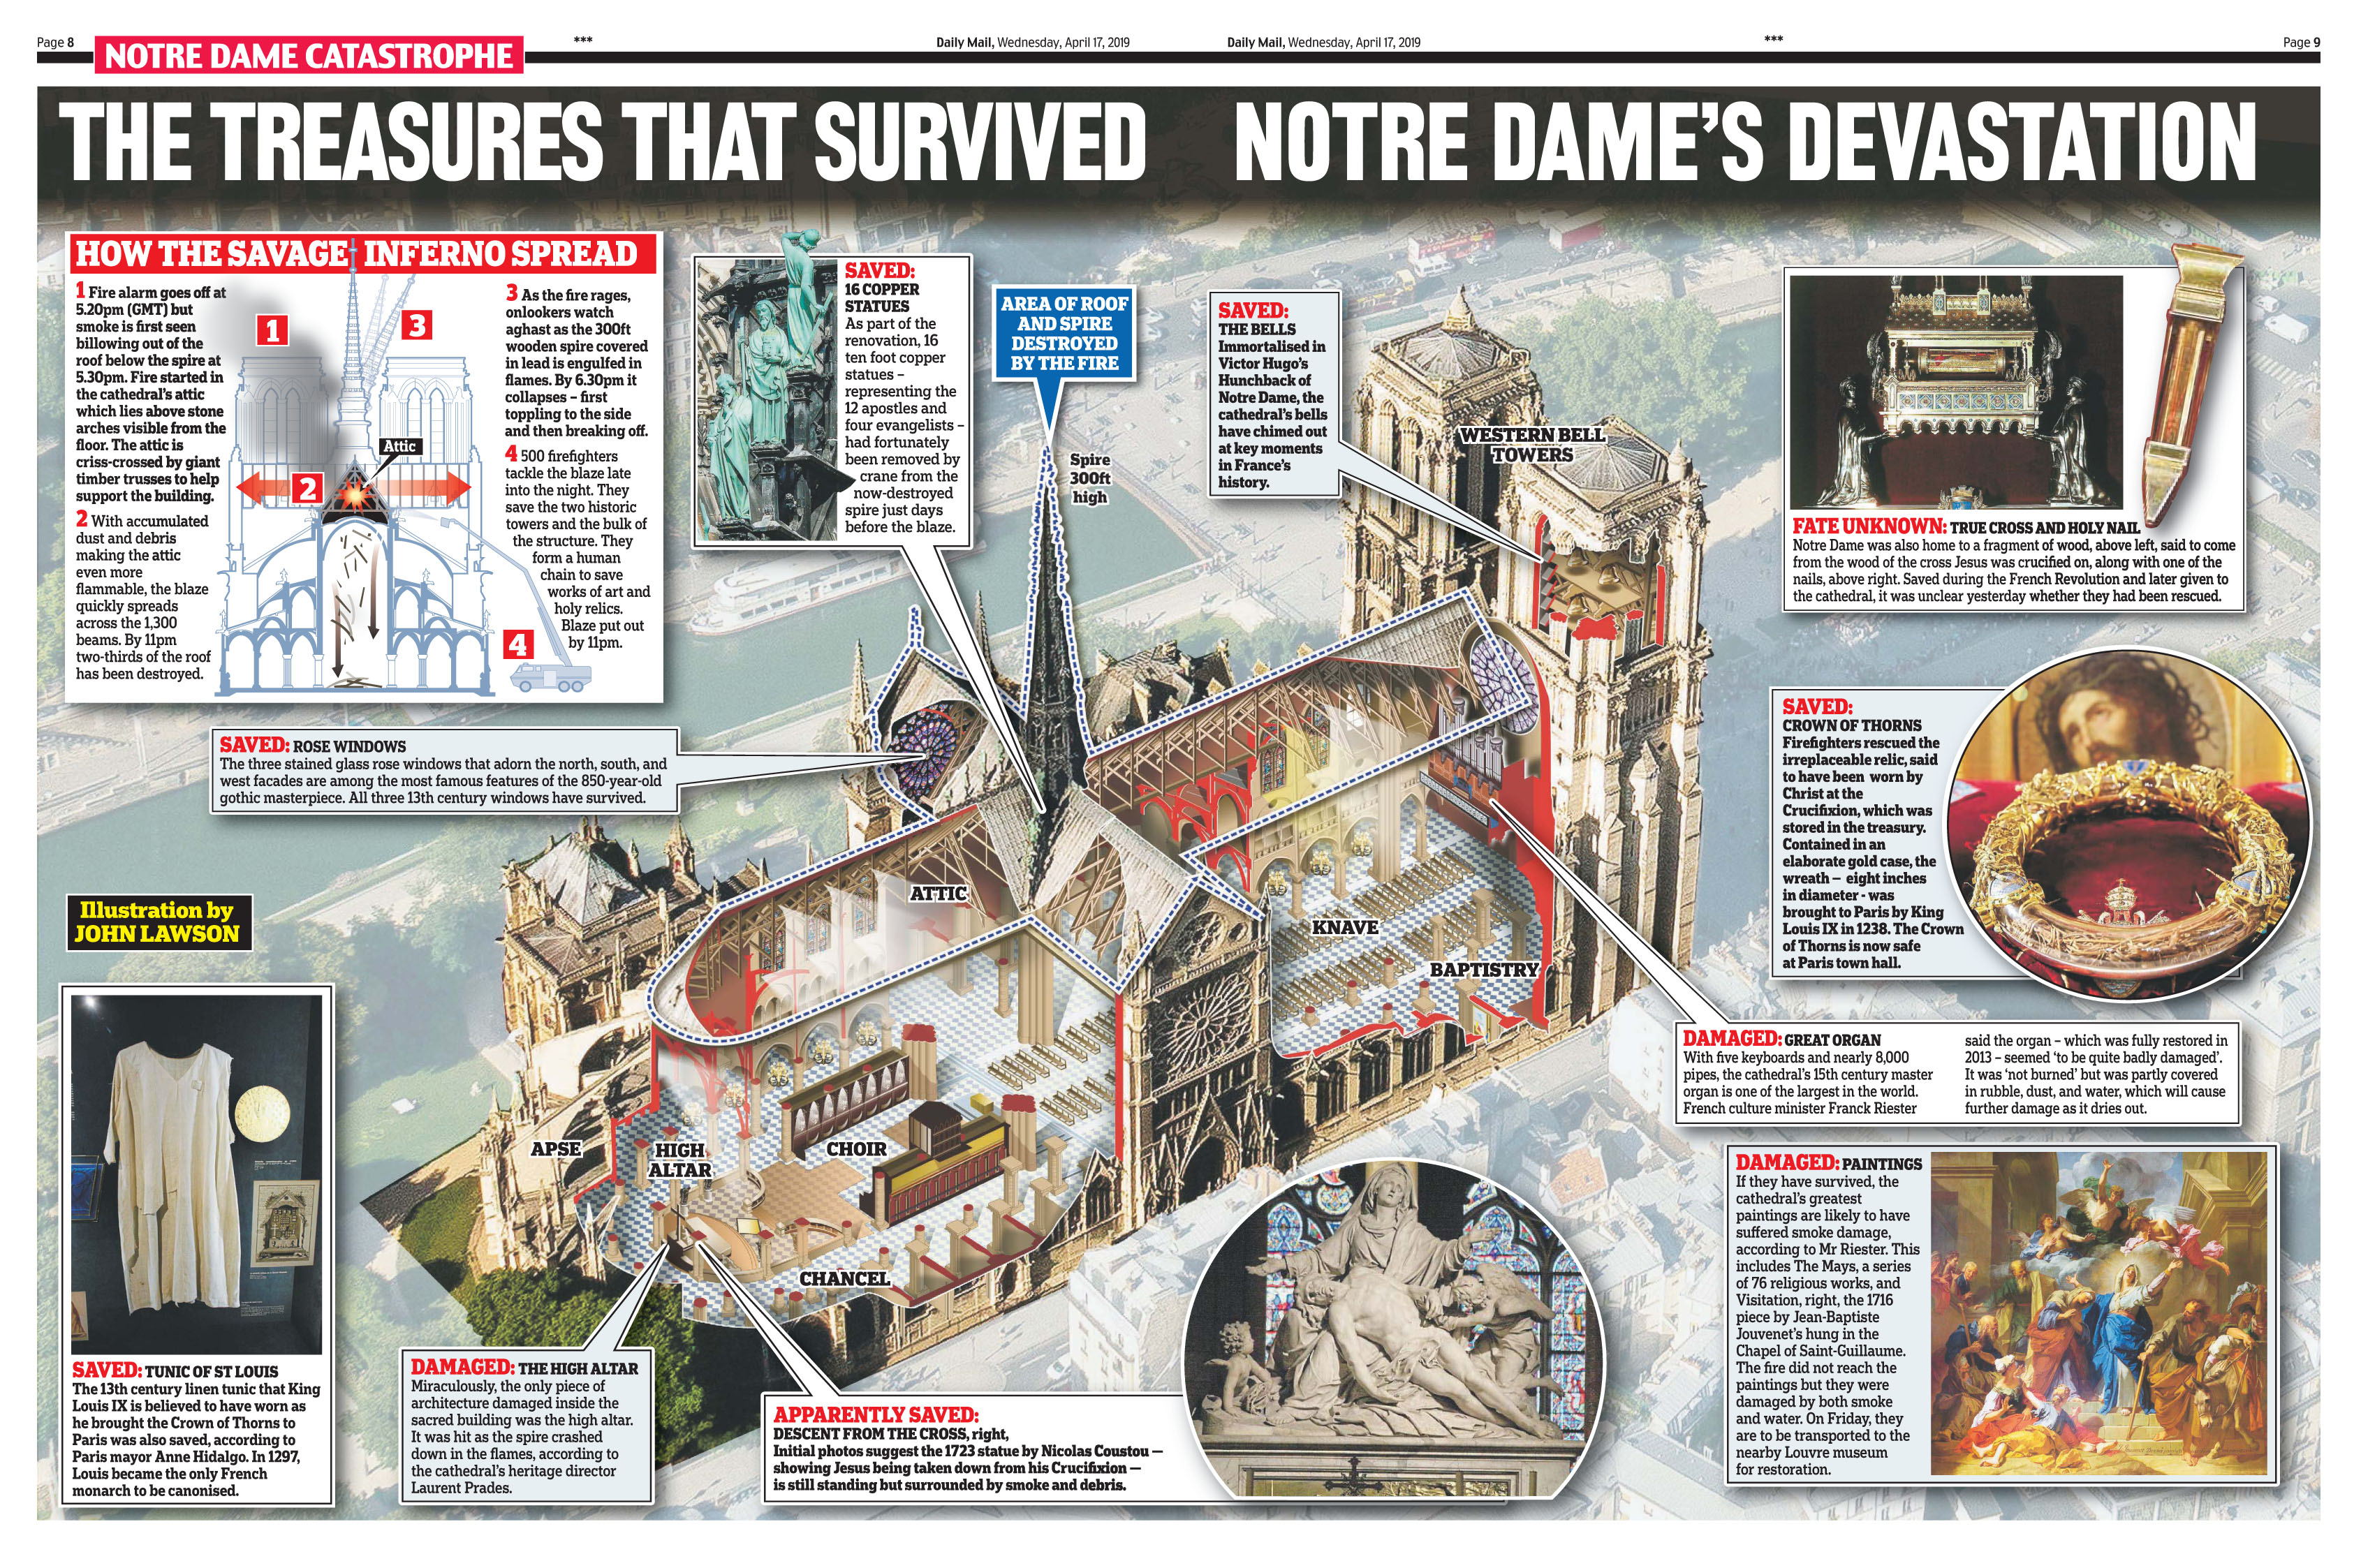 Daily Mail April 17 2019 Notre Dame 05.jpg